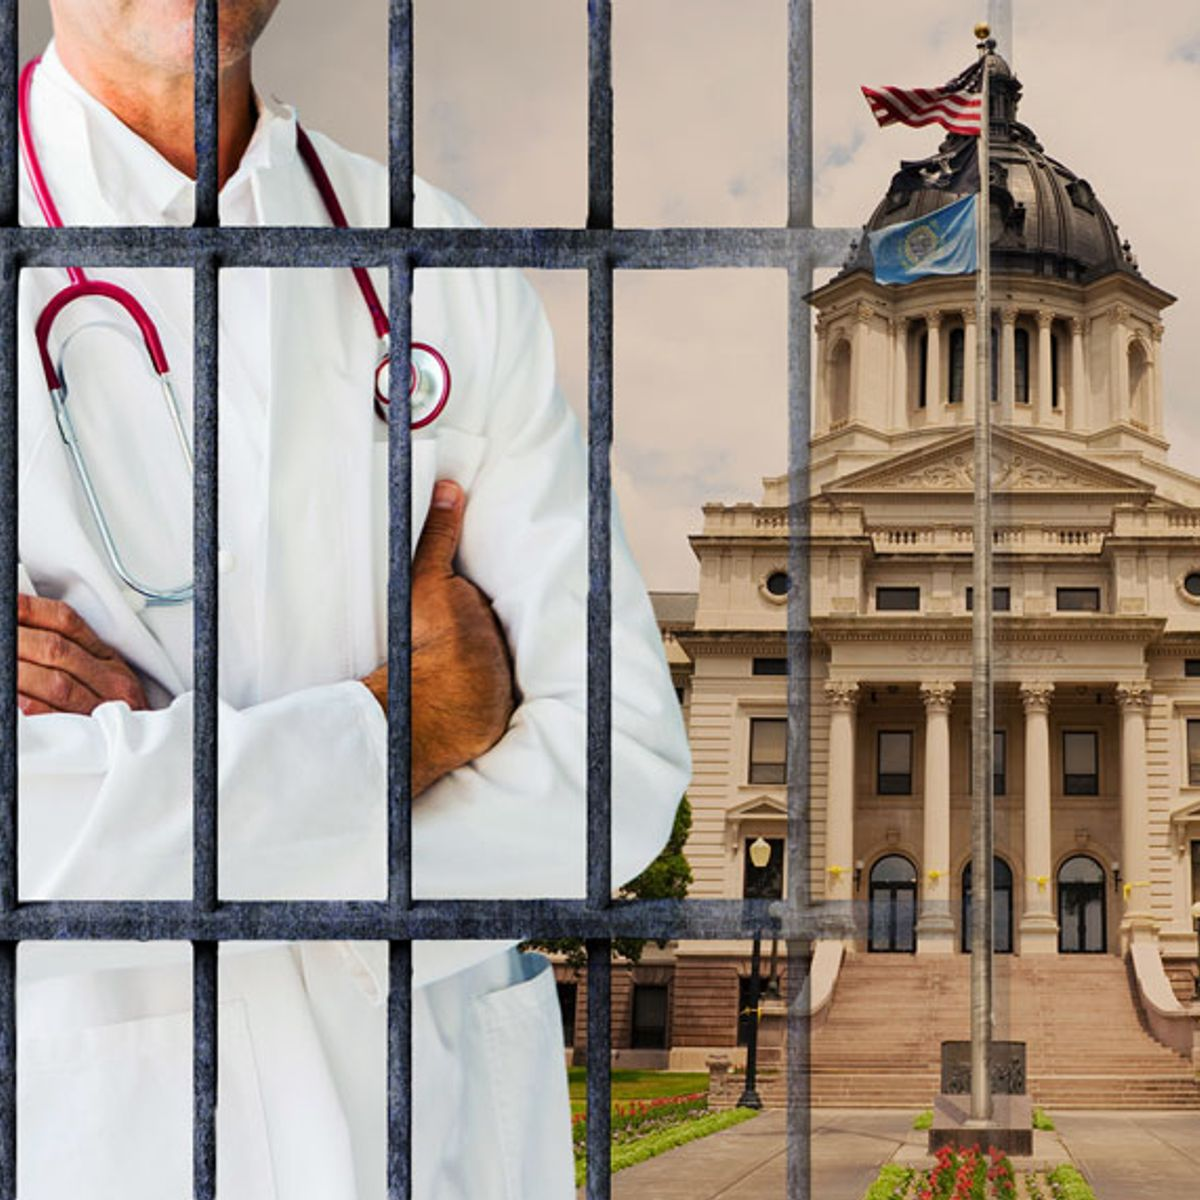 South Dakota GOP bill would jail doctors for 10 years if they provide trans health care to minors